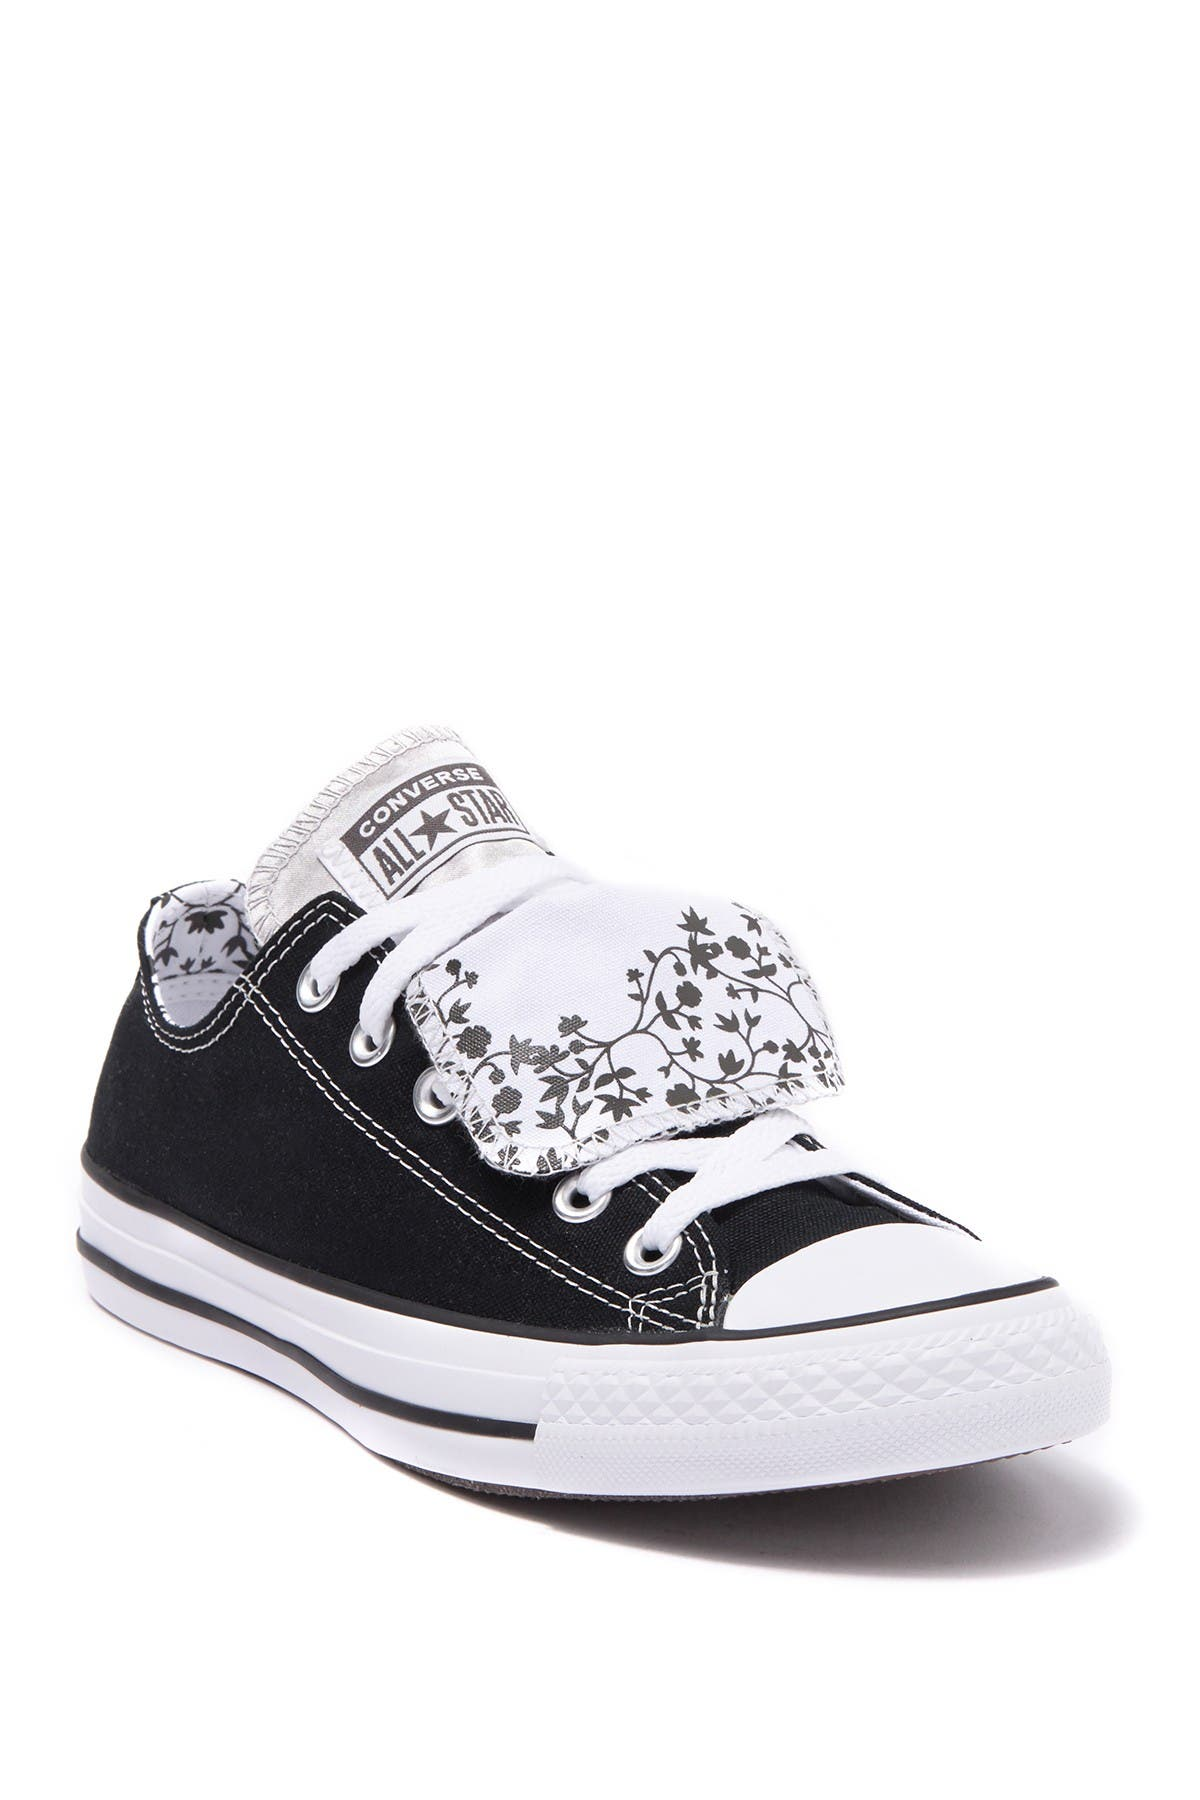 Image of Converse Chuck Taylor All Star Double Tongue Sneaker